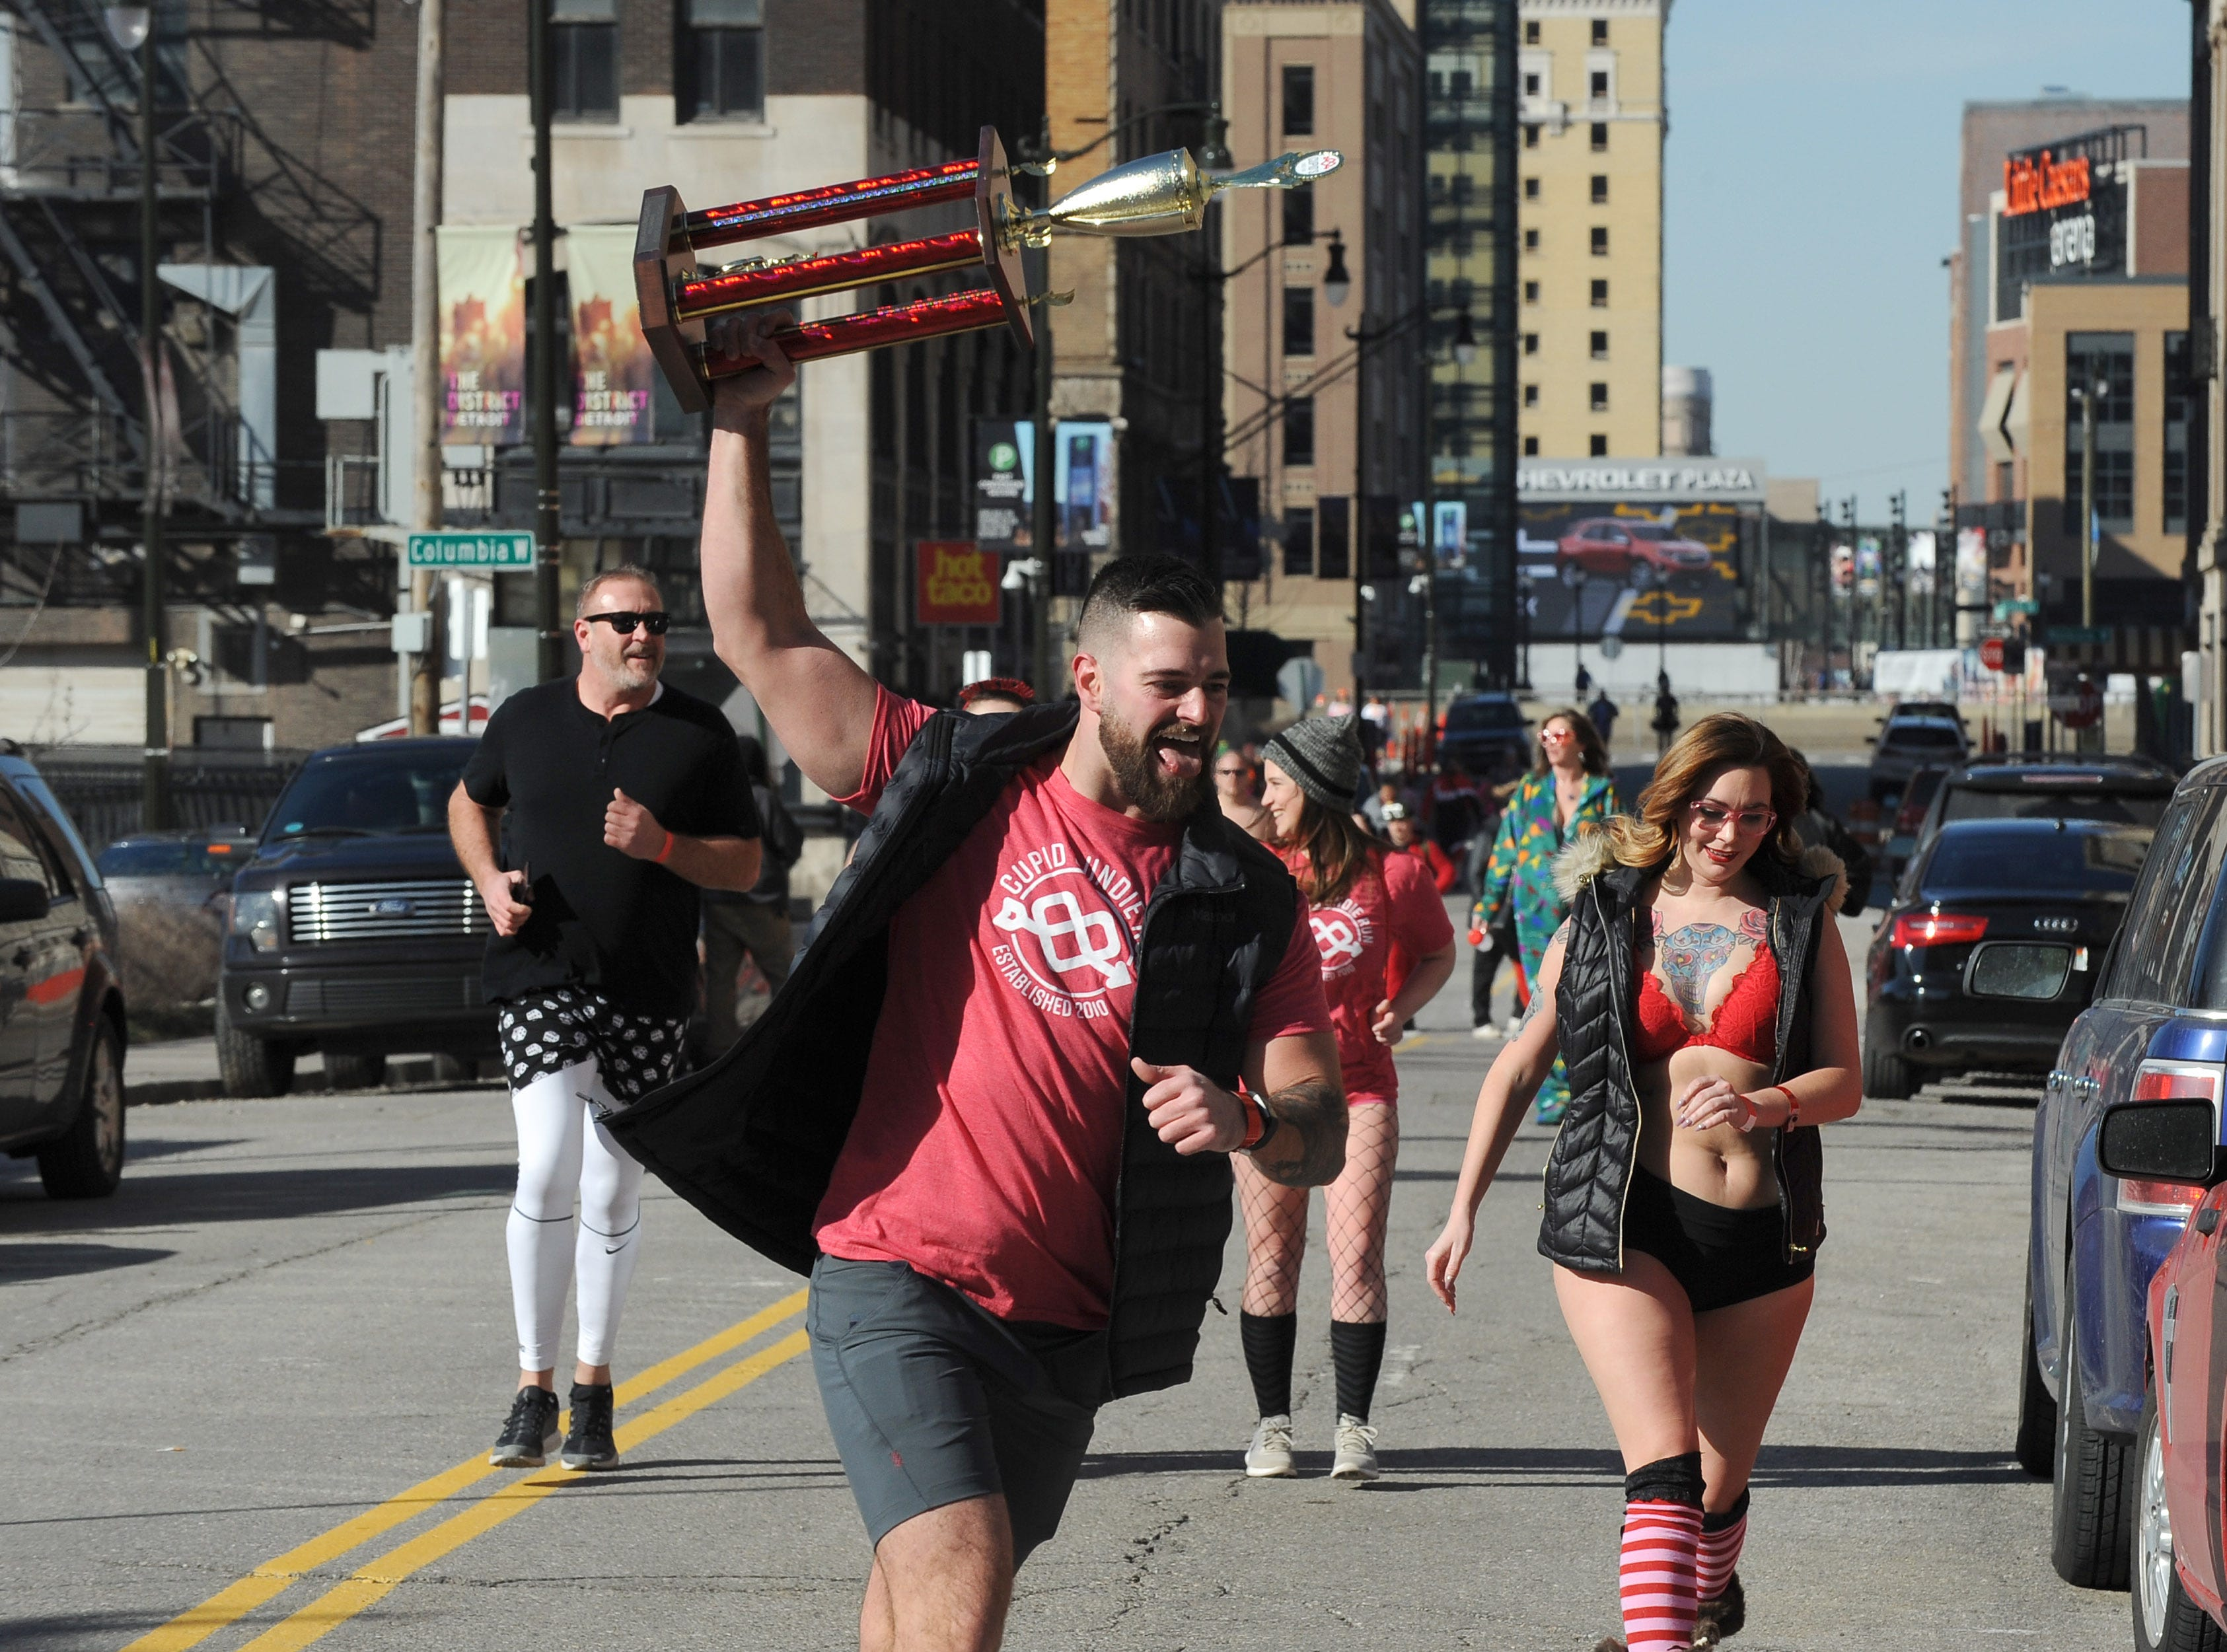 Participants even carried trophy's while heading to the finish for Cupid's Undie Run.